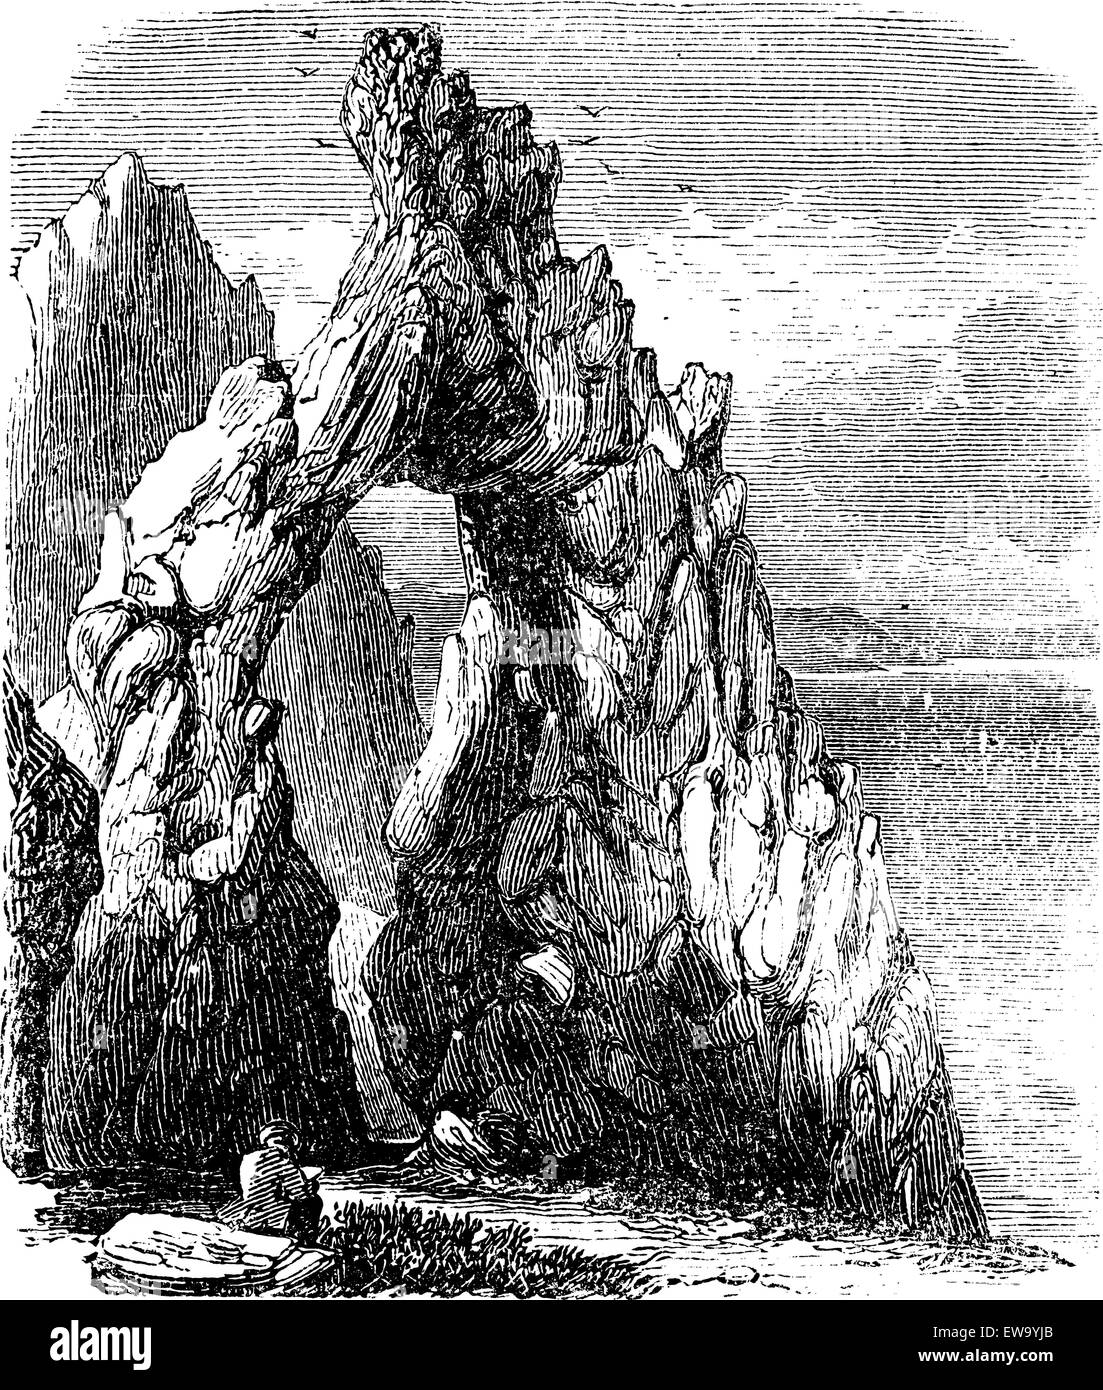 Capri, Italy, in the Tyrrhenian Sea. Natural rock arch or gaunt rock vintage engraving . Old engraved illustration - Stock Vector